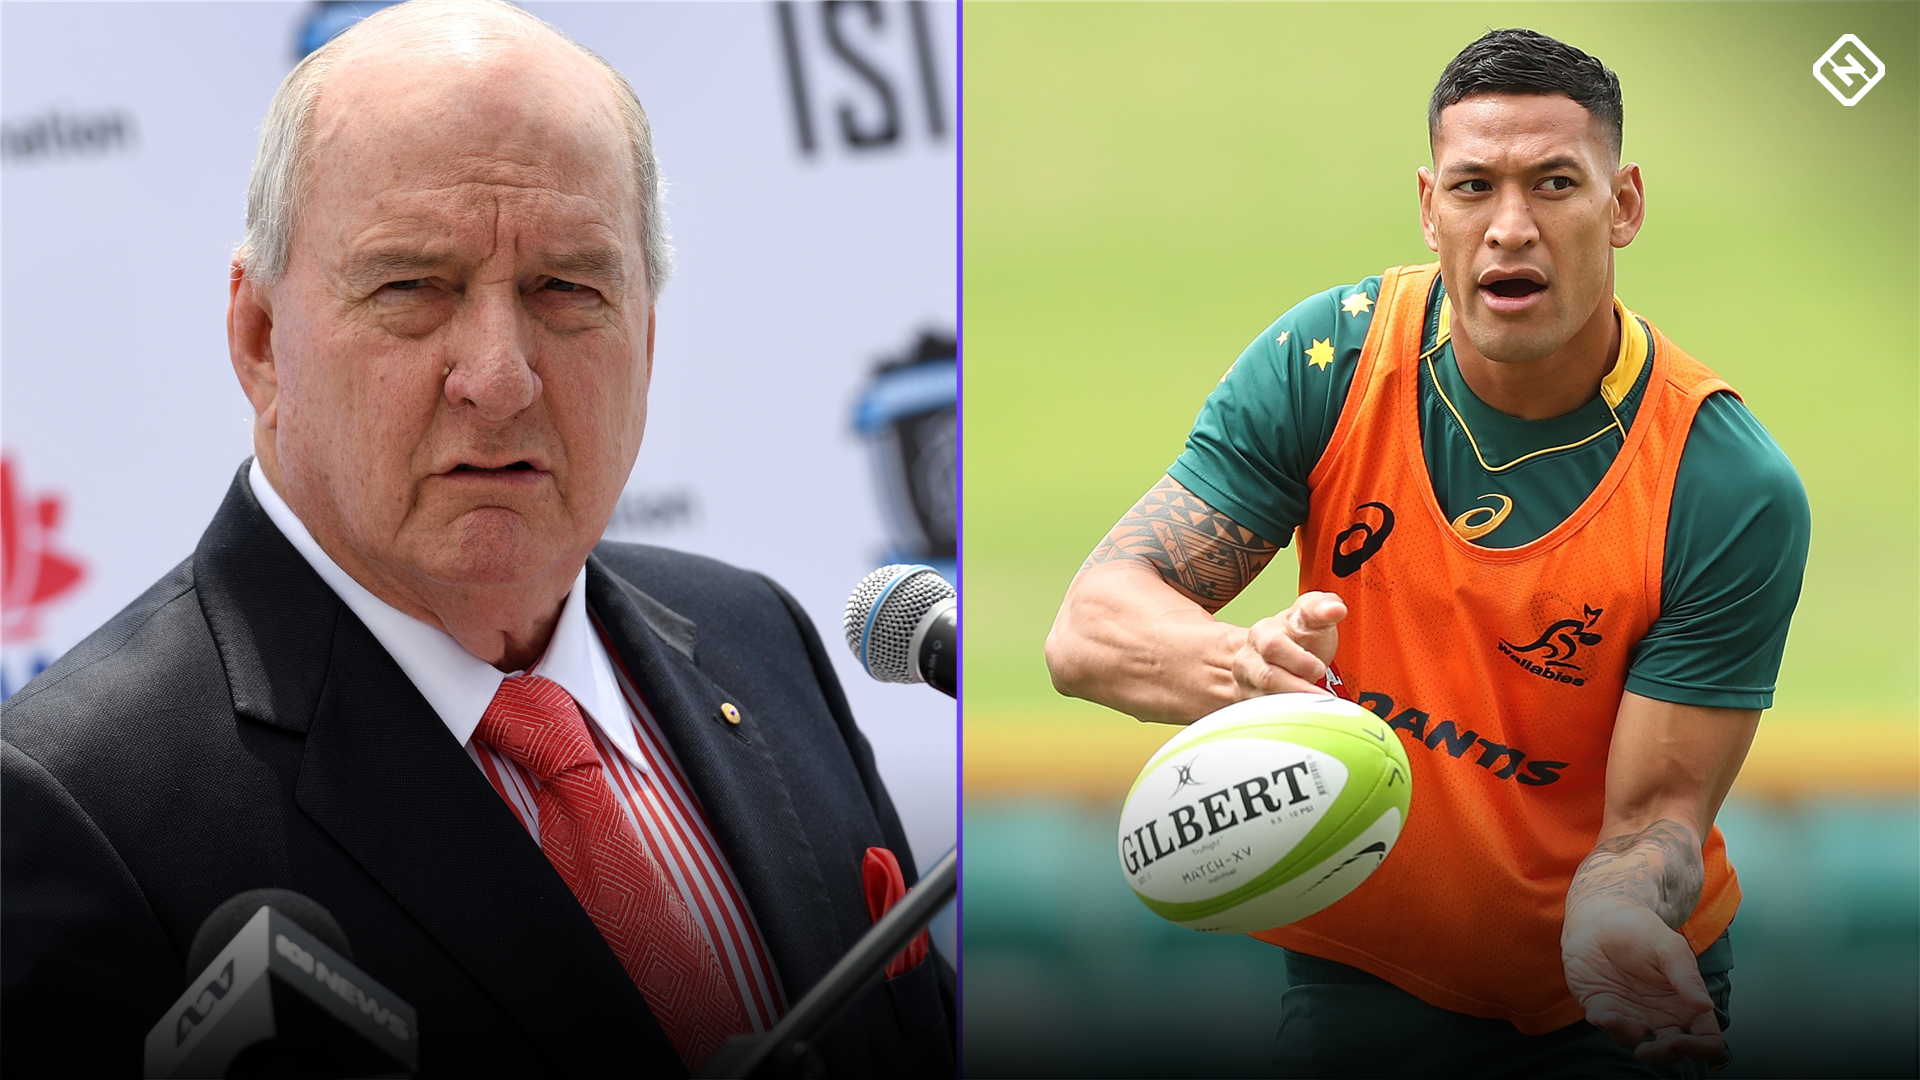 Alan Jones destroys 'incompetent' Rugby Australia over Israel Folau sacking